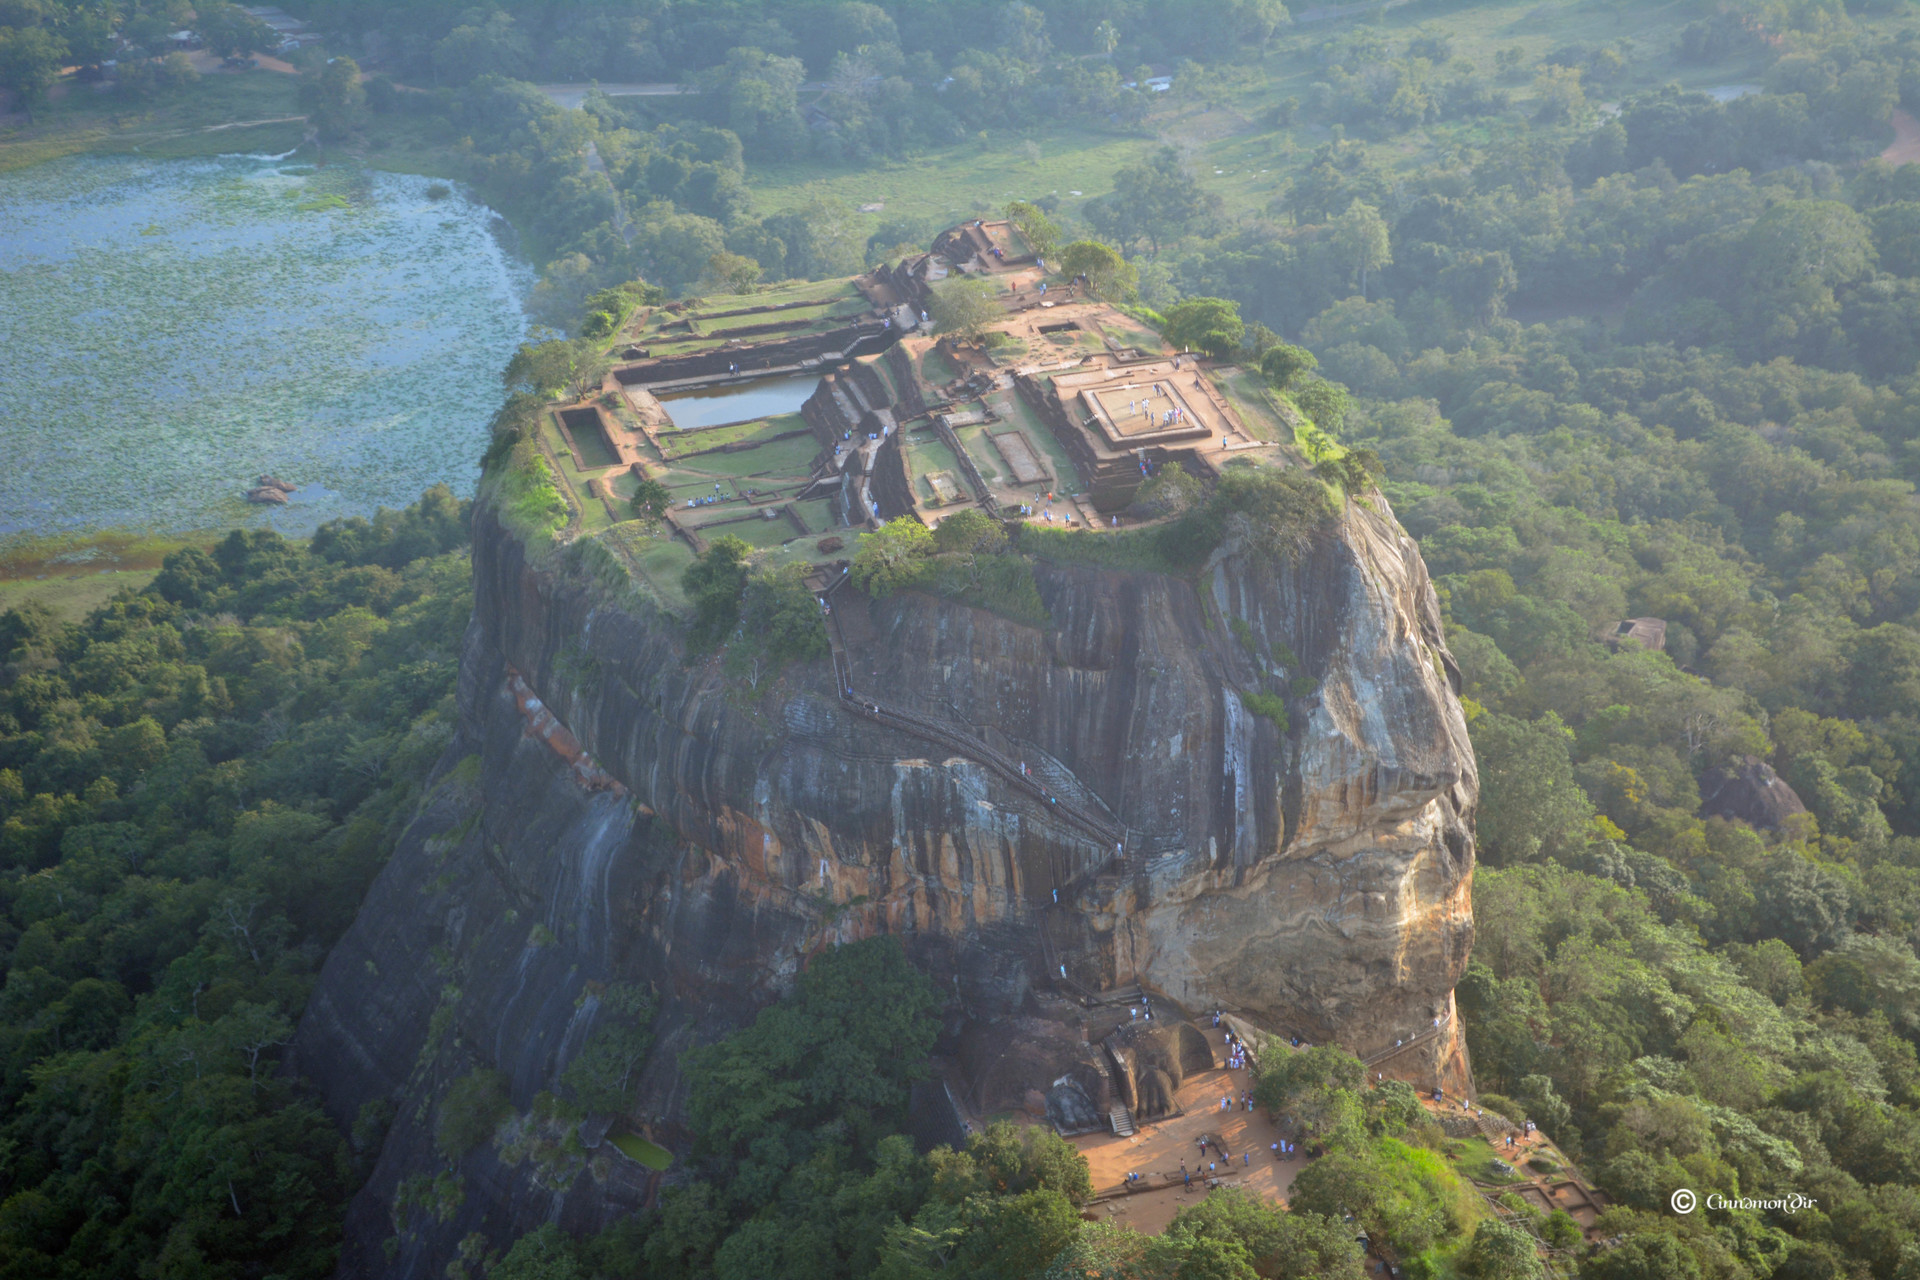 aerial-view-of-sigiriya-rock-fortress_15164859596_o.jpg